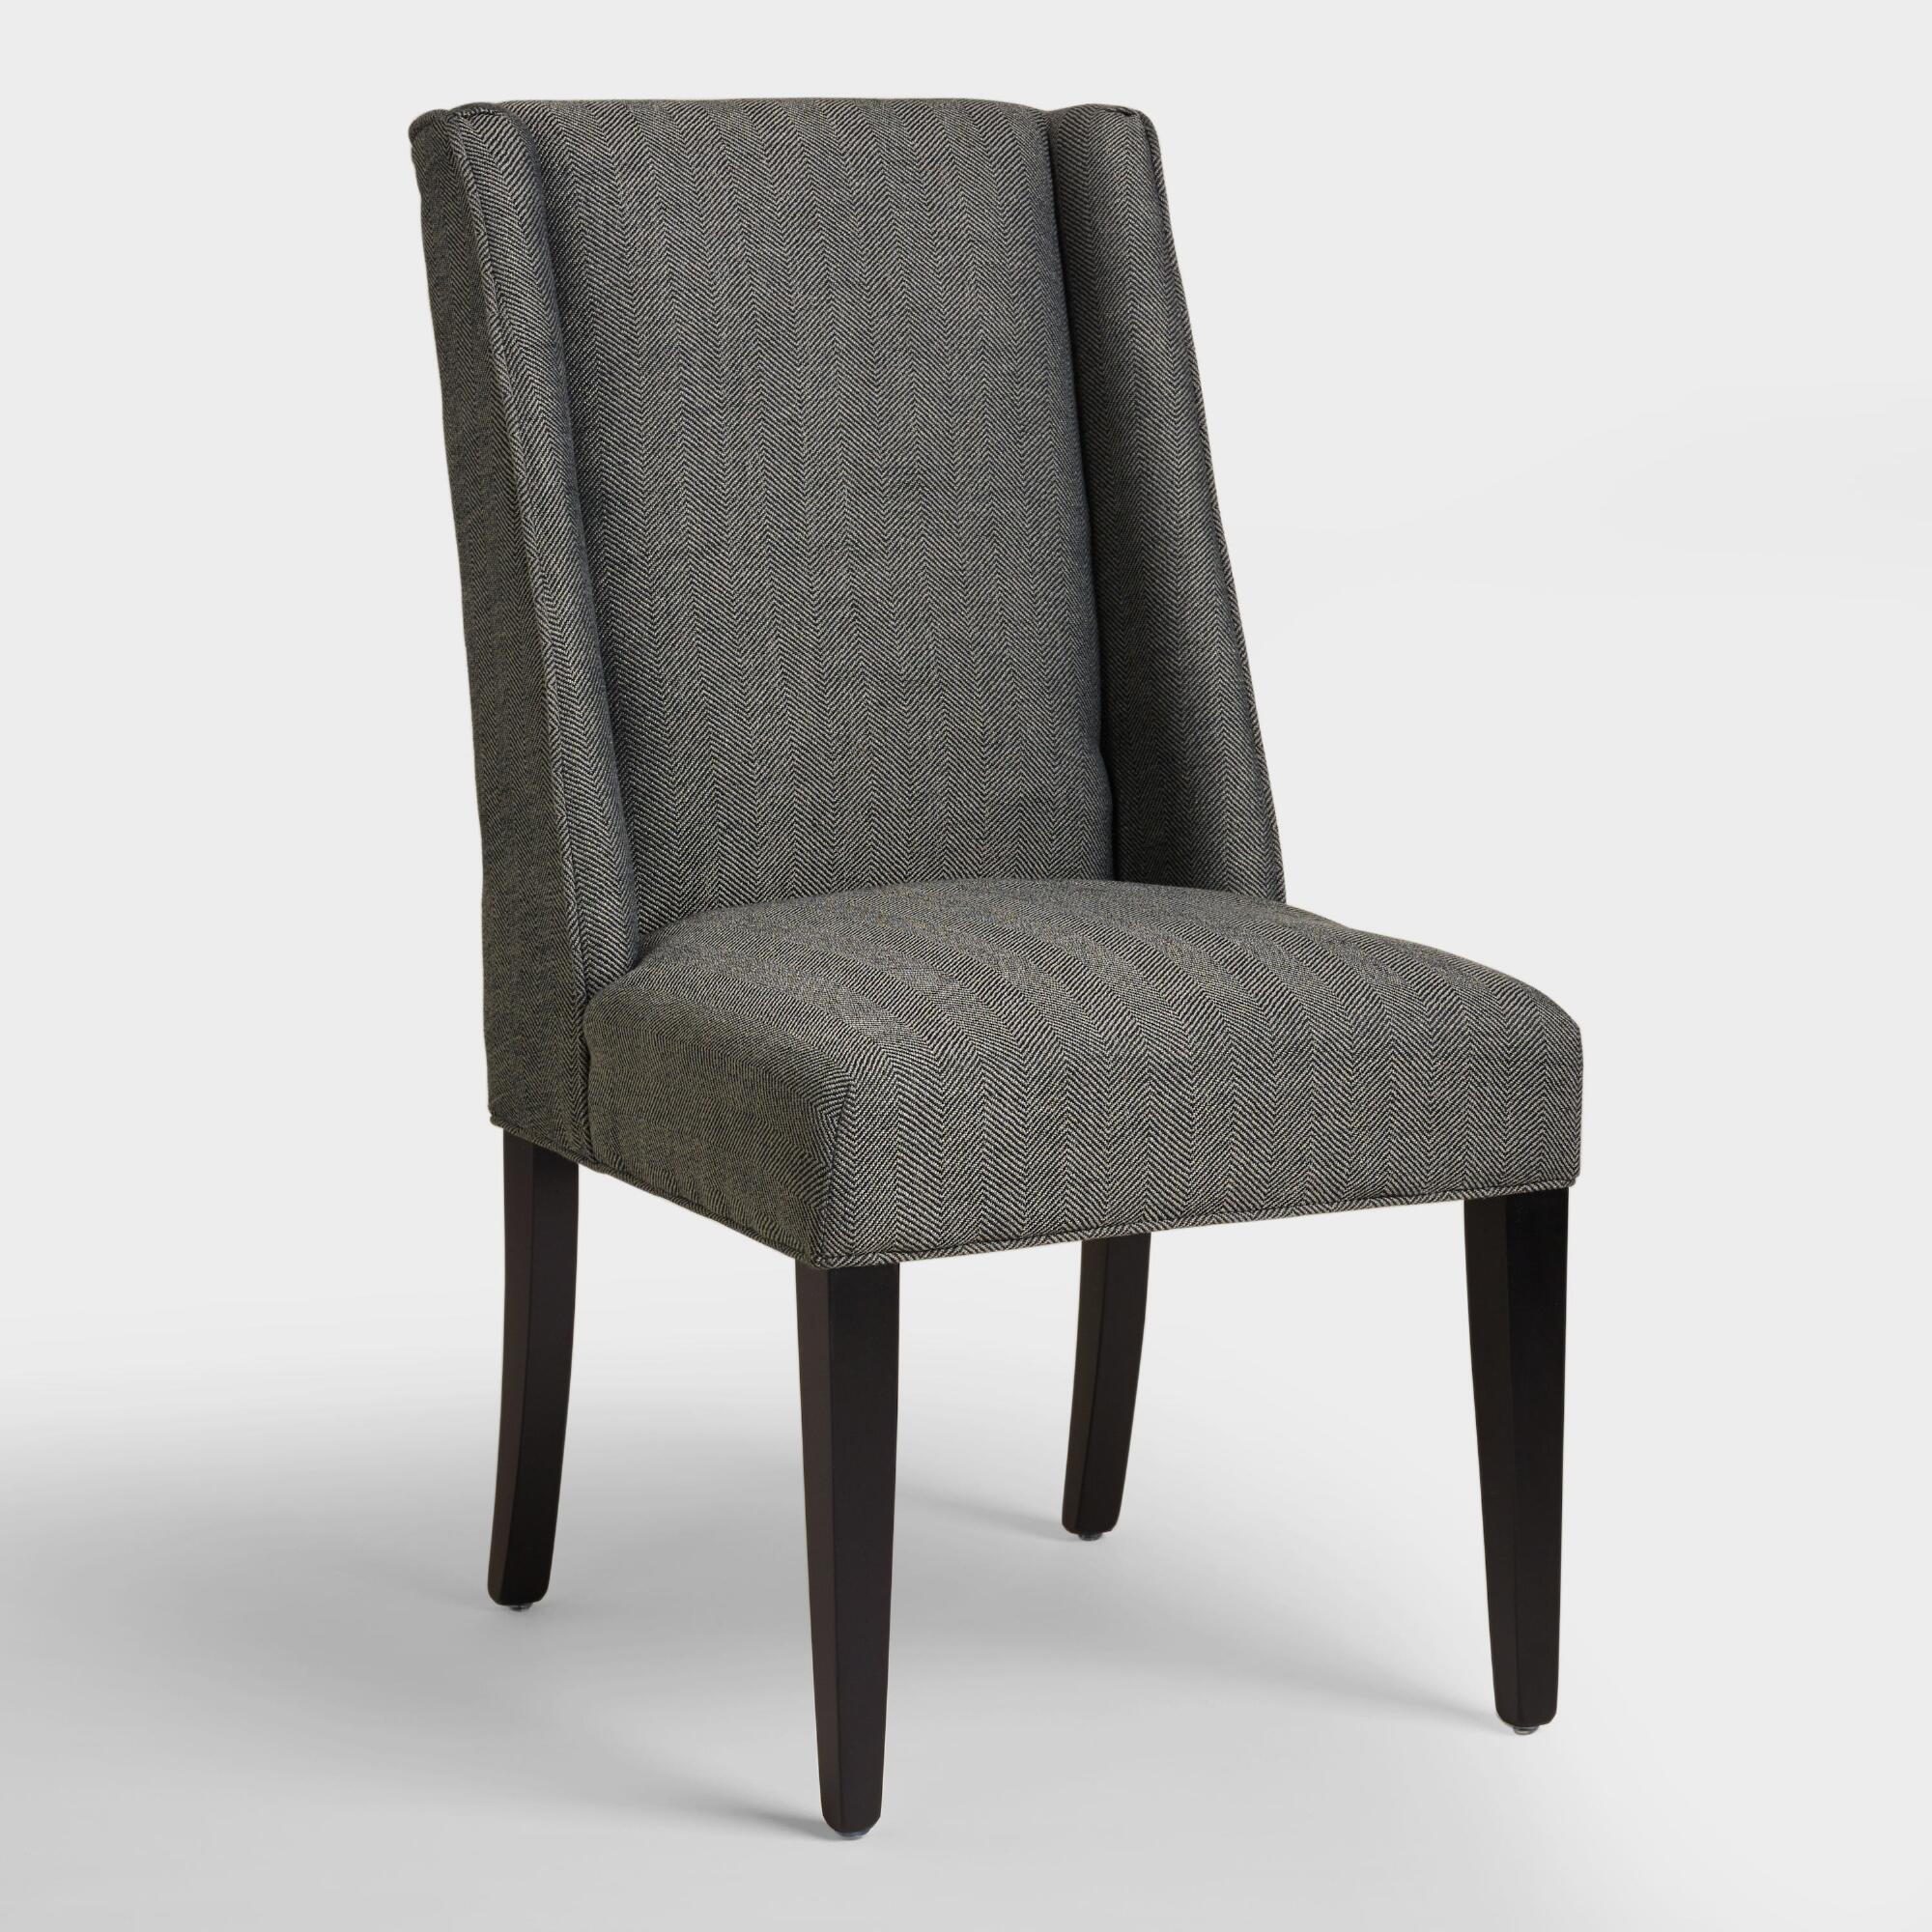 Black upholstered dining chairs - Charcoal Herringbone Lawford Dining Chairs